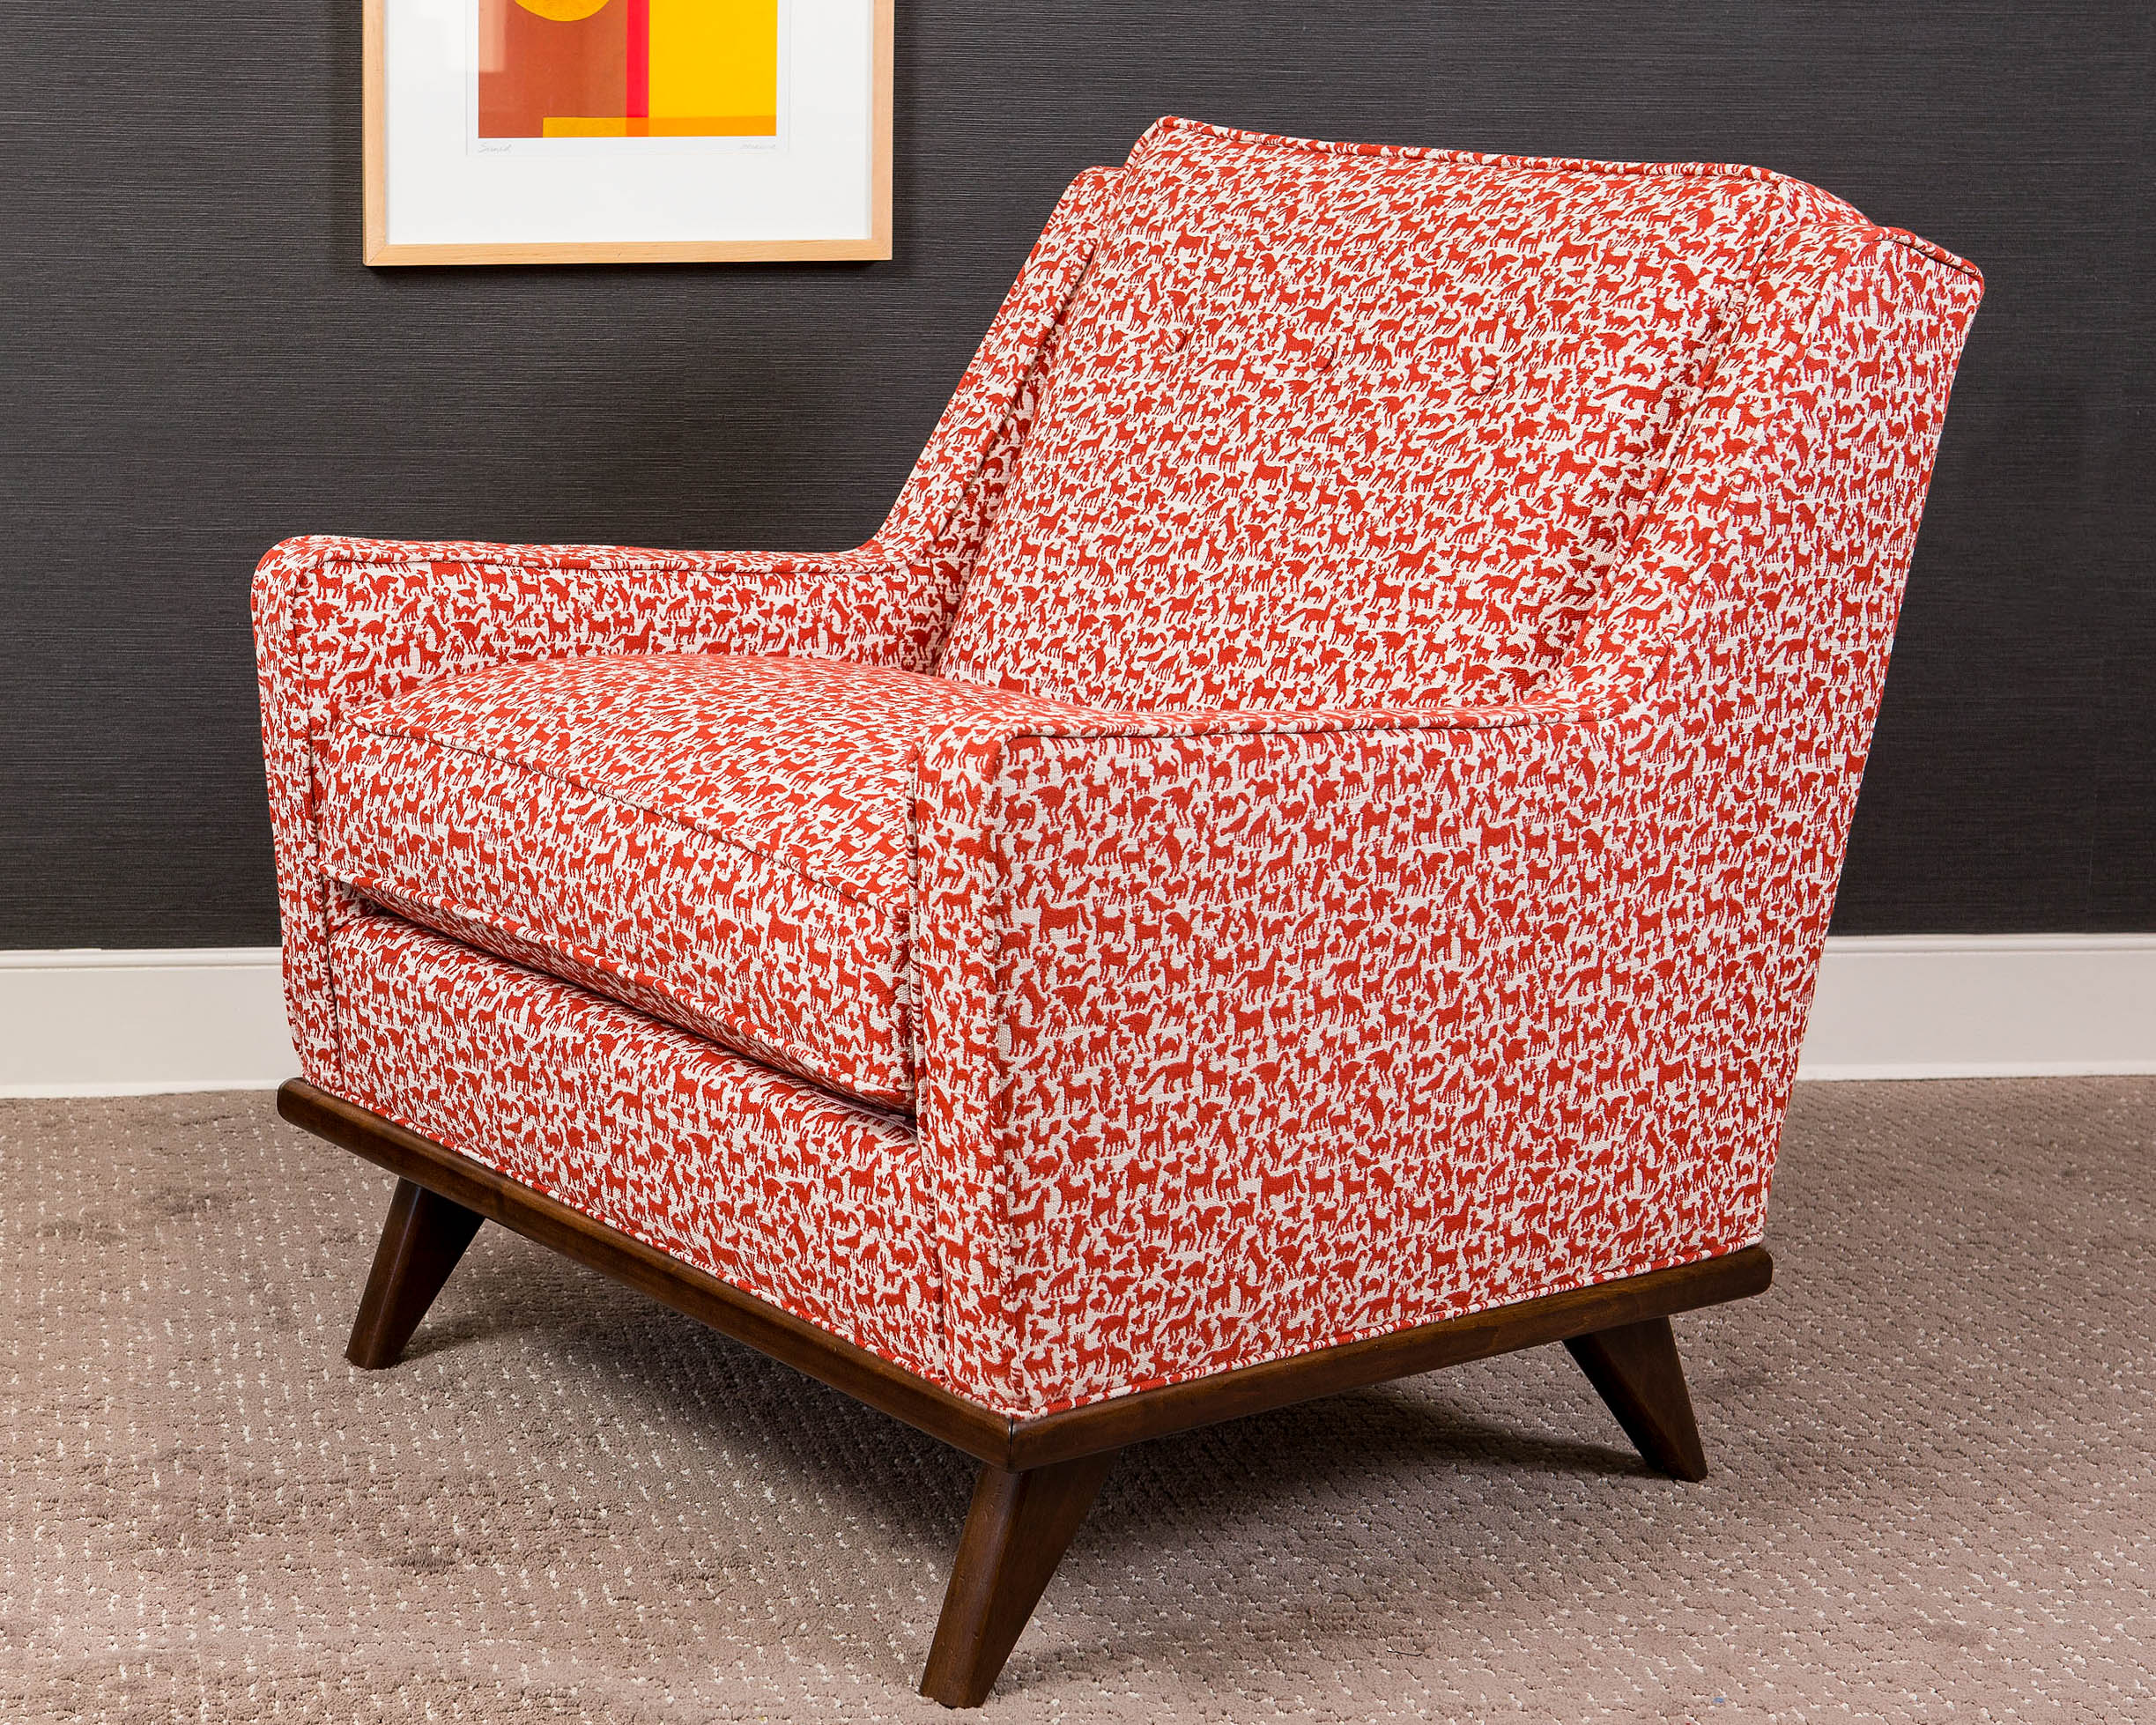 The Petrie frame comes as a chair, ottoman, or sofa. Shown here in a bold, stylish print for our Lookbook 2019.